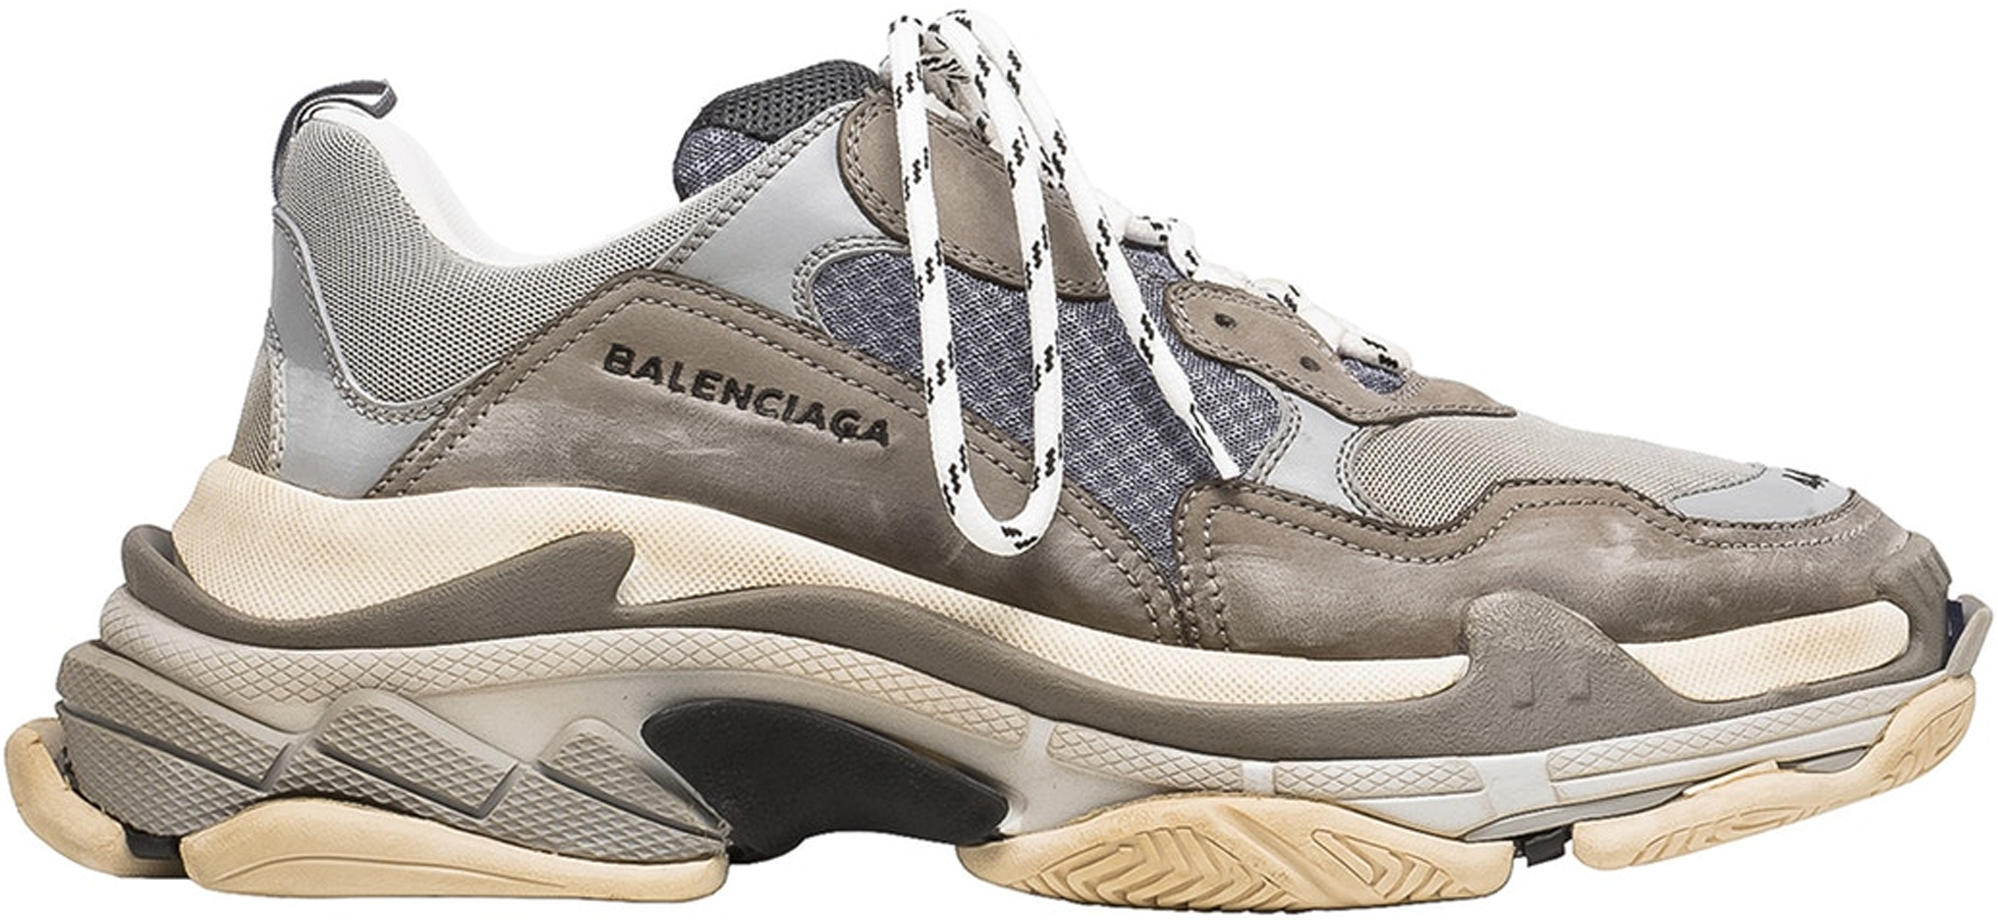 balenciaga triple s outfit ideas 2 1 Want Get Repeat